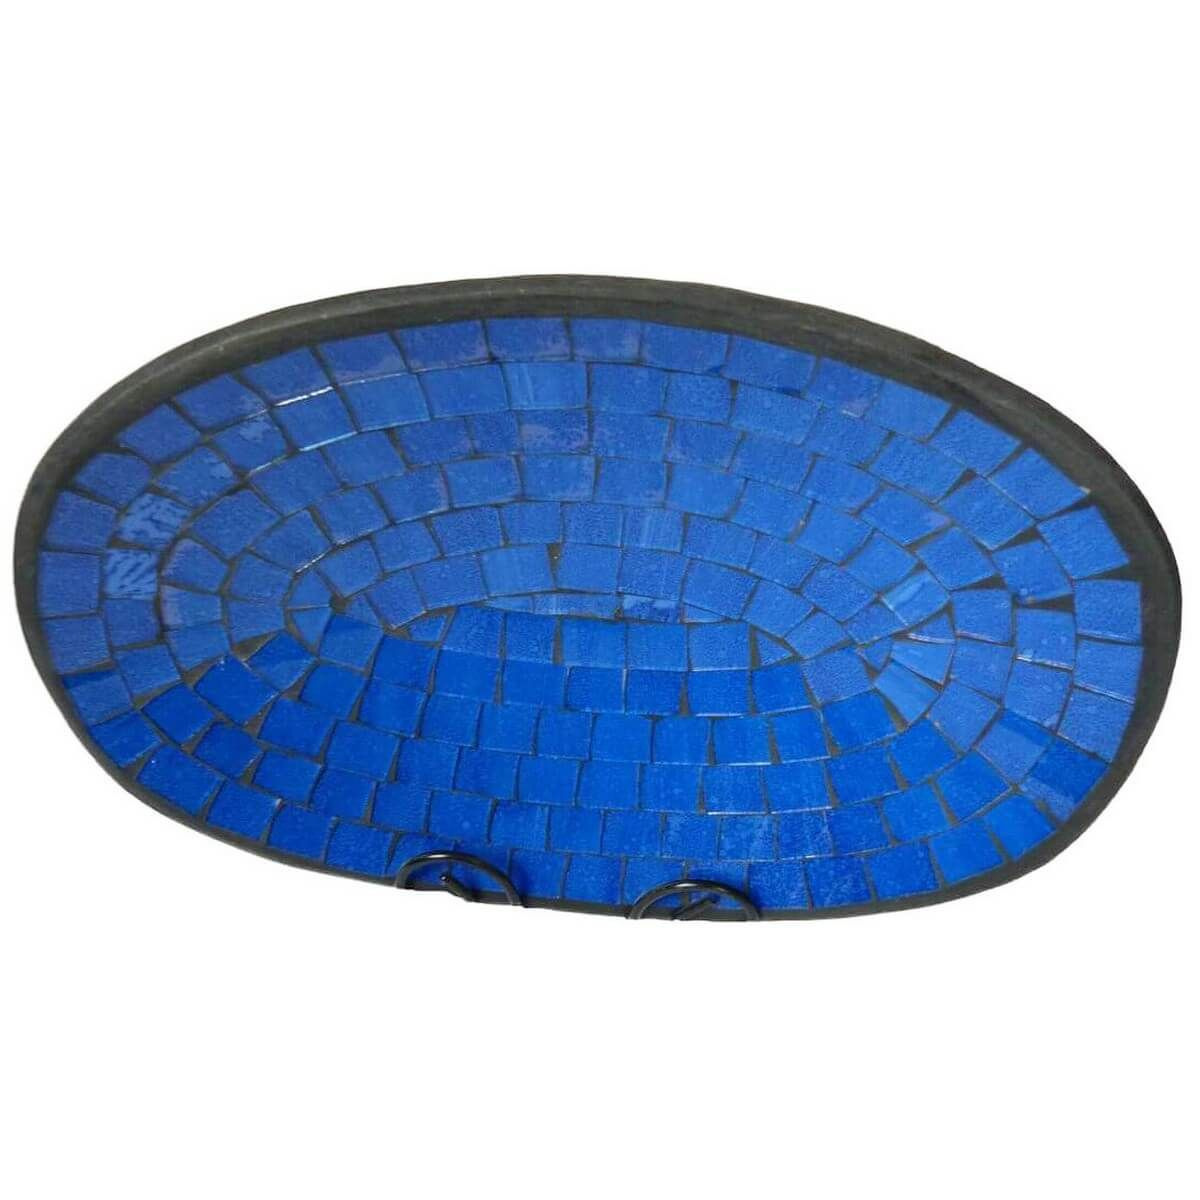 mosaikschale tonschale glasschale dekoschale mosaik kunst deko oval gro ebay. Black Bedroom Furniture Sets. Home Design Ideas